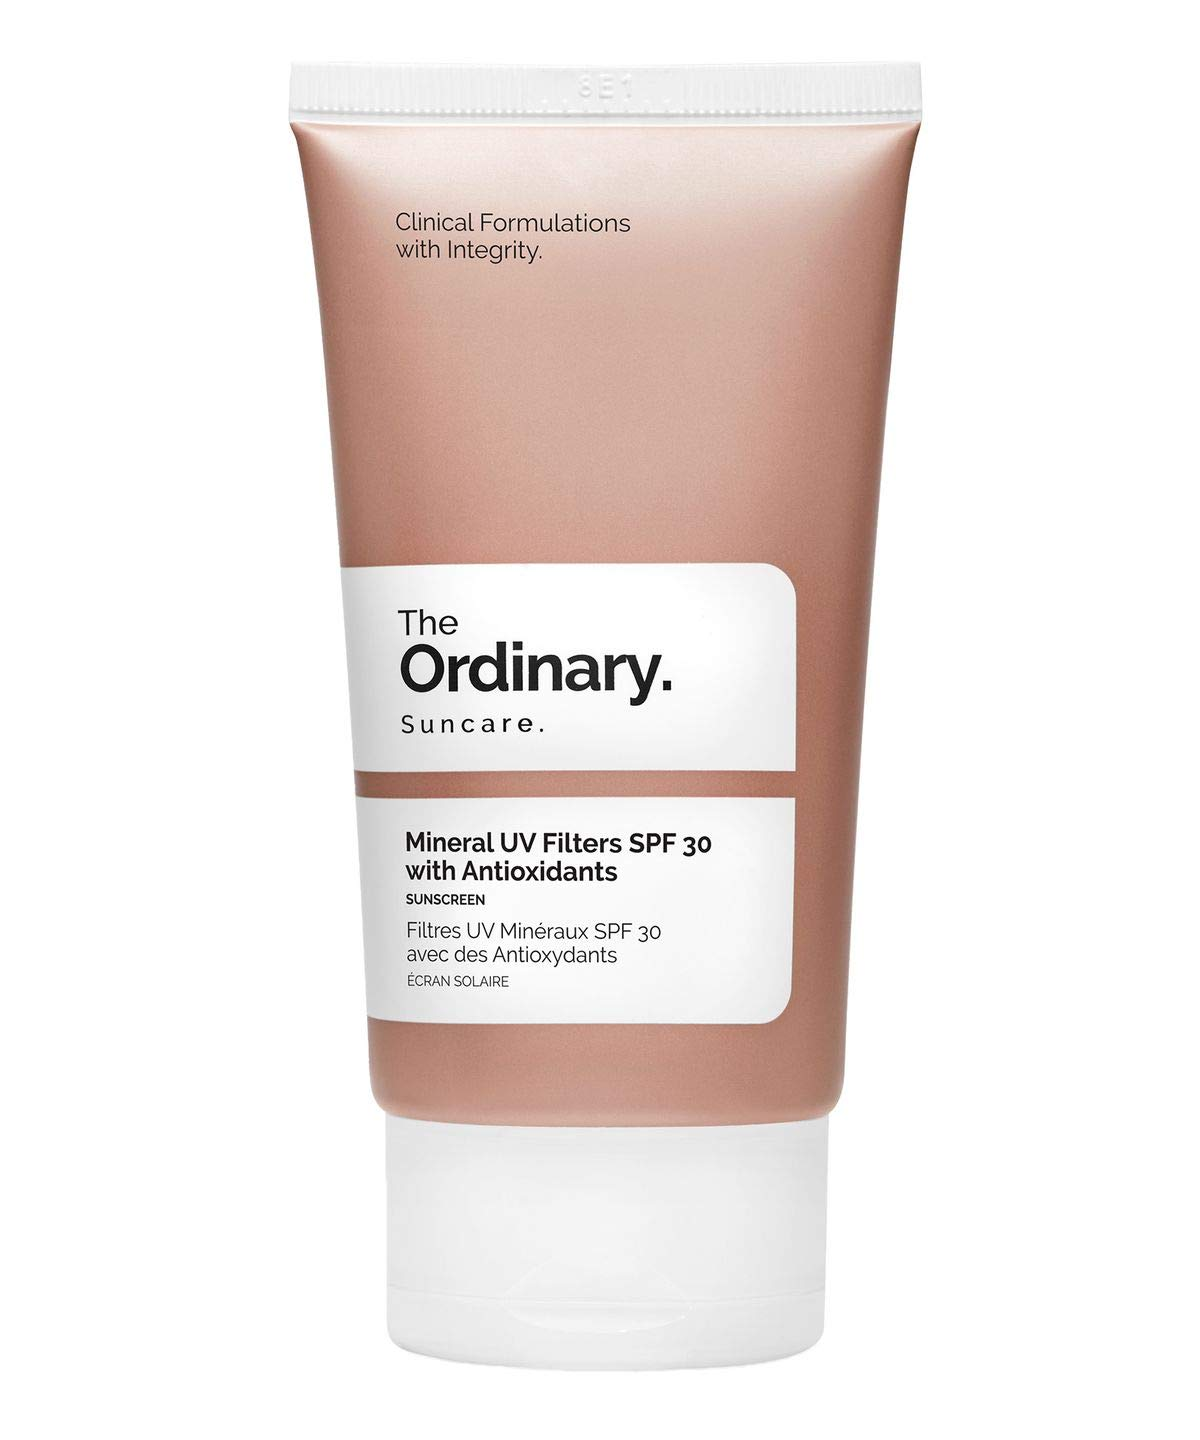 The Ordinary - Mineral UV Filters SPF 30 with Antioxidants